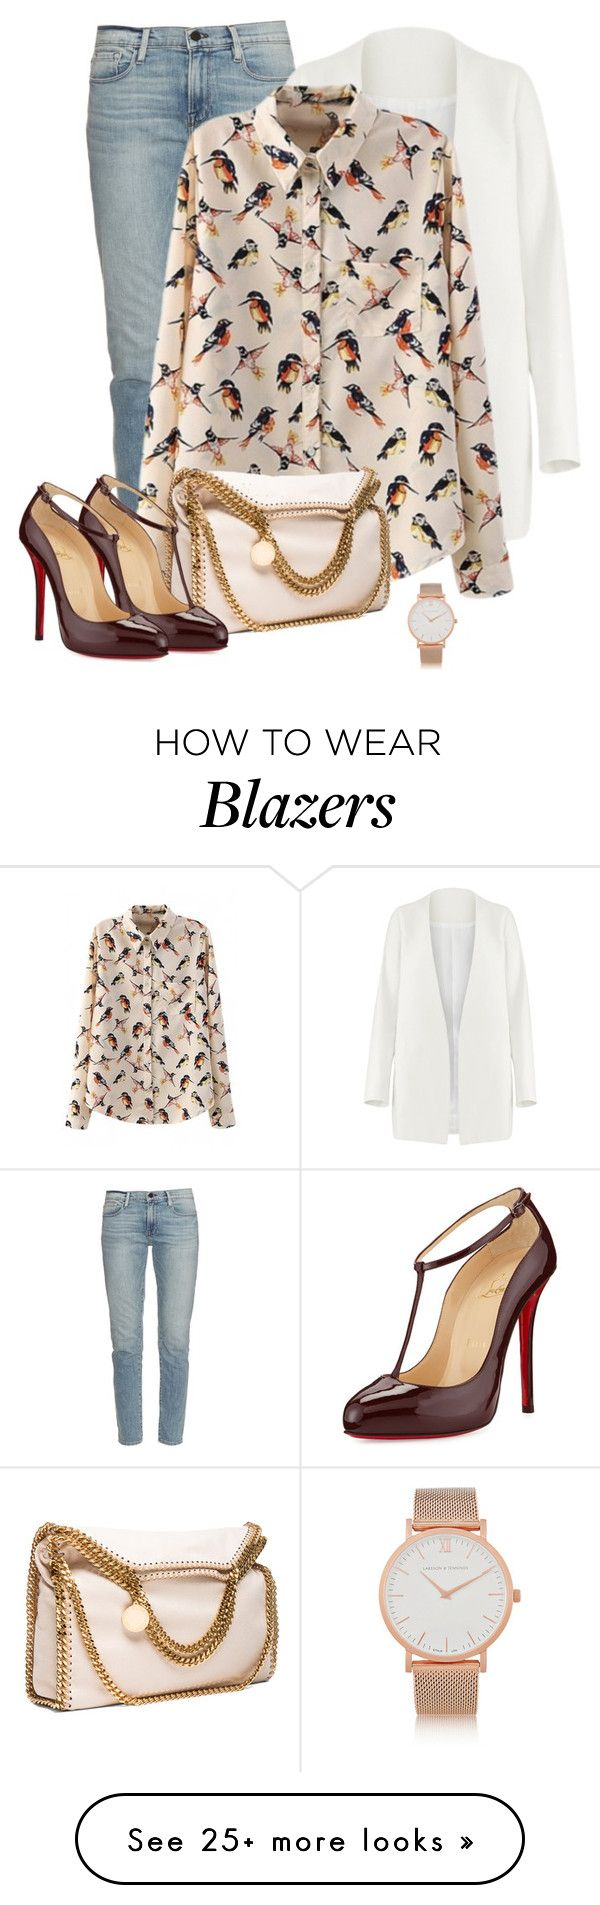 """Untitled #236"" by tijana89 on Polyvore featuring Frame Denim, Non, STELLA McCARTNEY, Christian Louboutin and Larsson & Jennings"